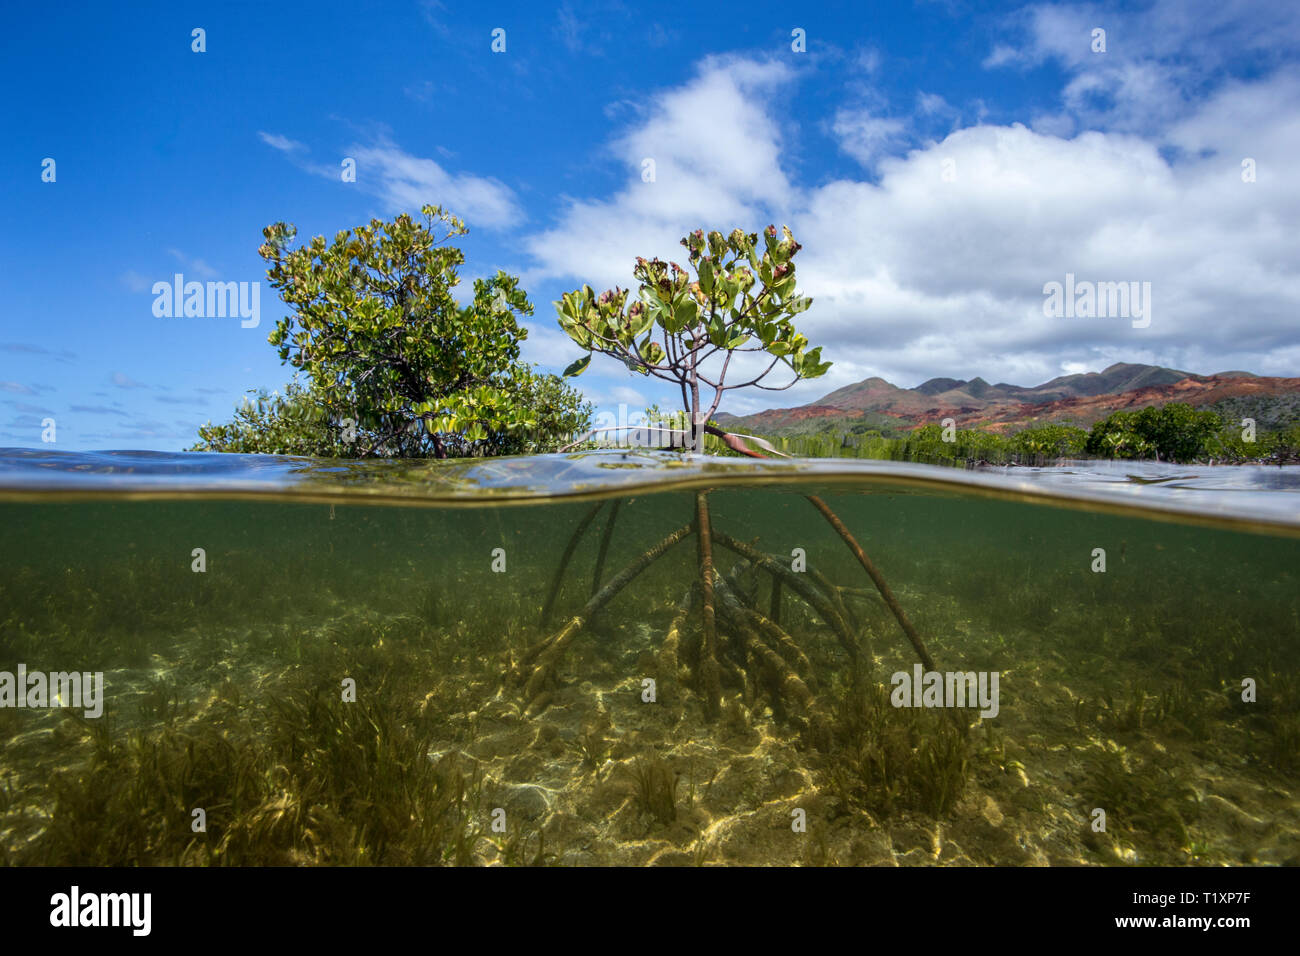 Mangroves on the Forgotten Coast, Southern Lagoon Unesco World Heritage Site, New Caledonia. - Stock Image